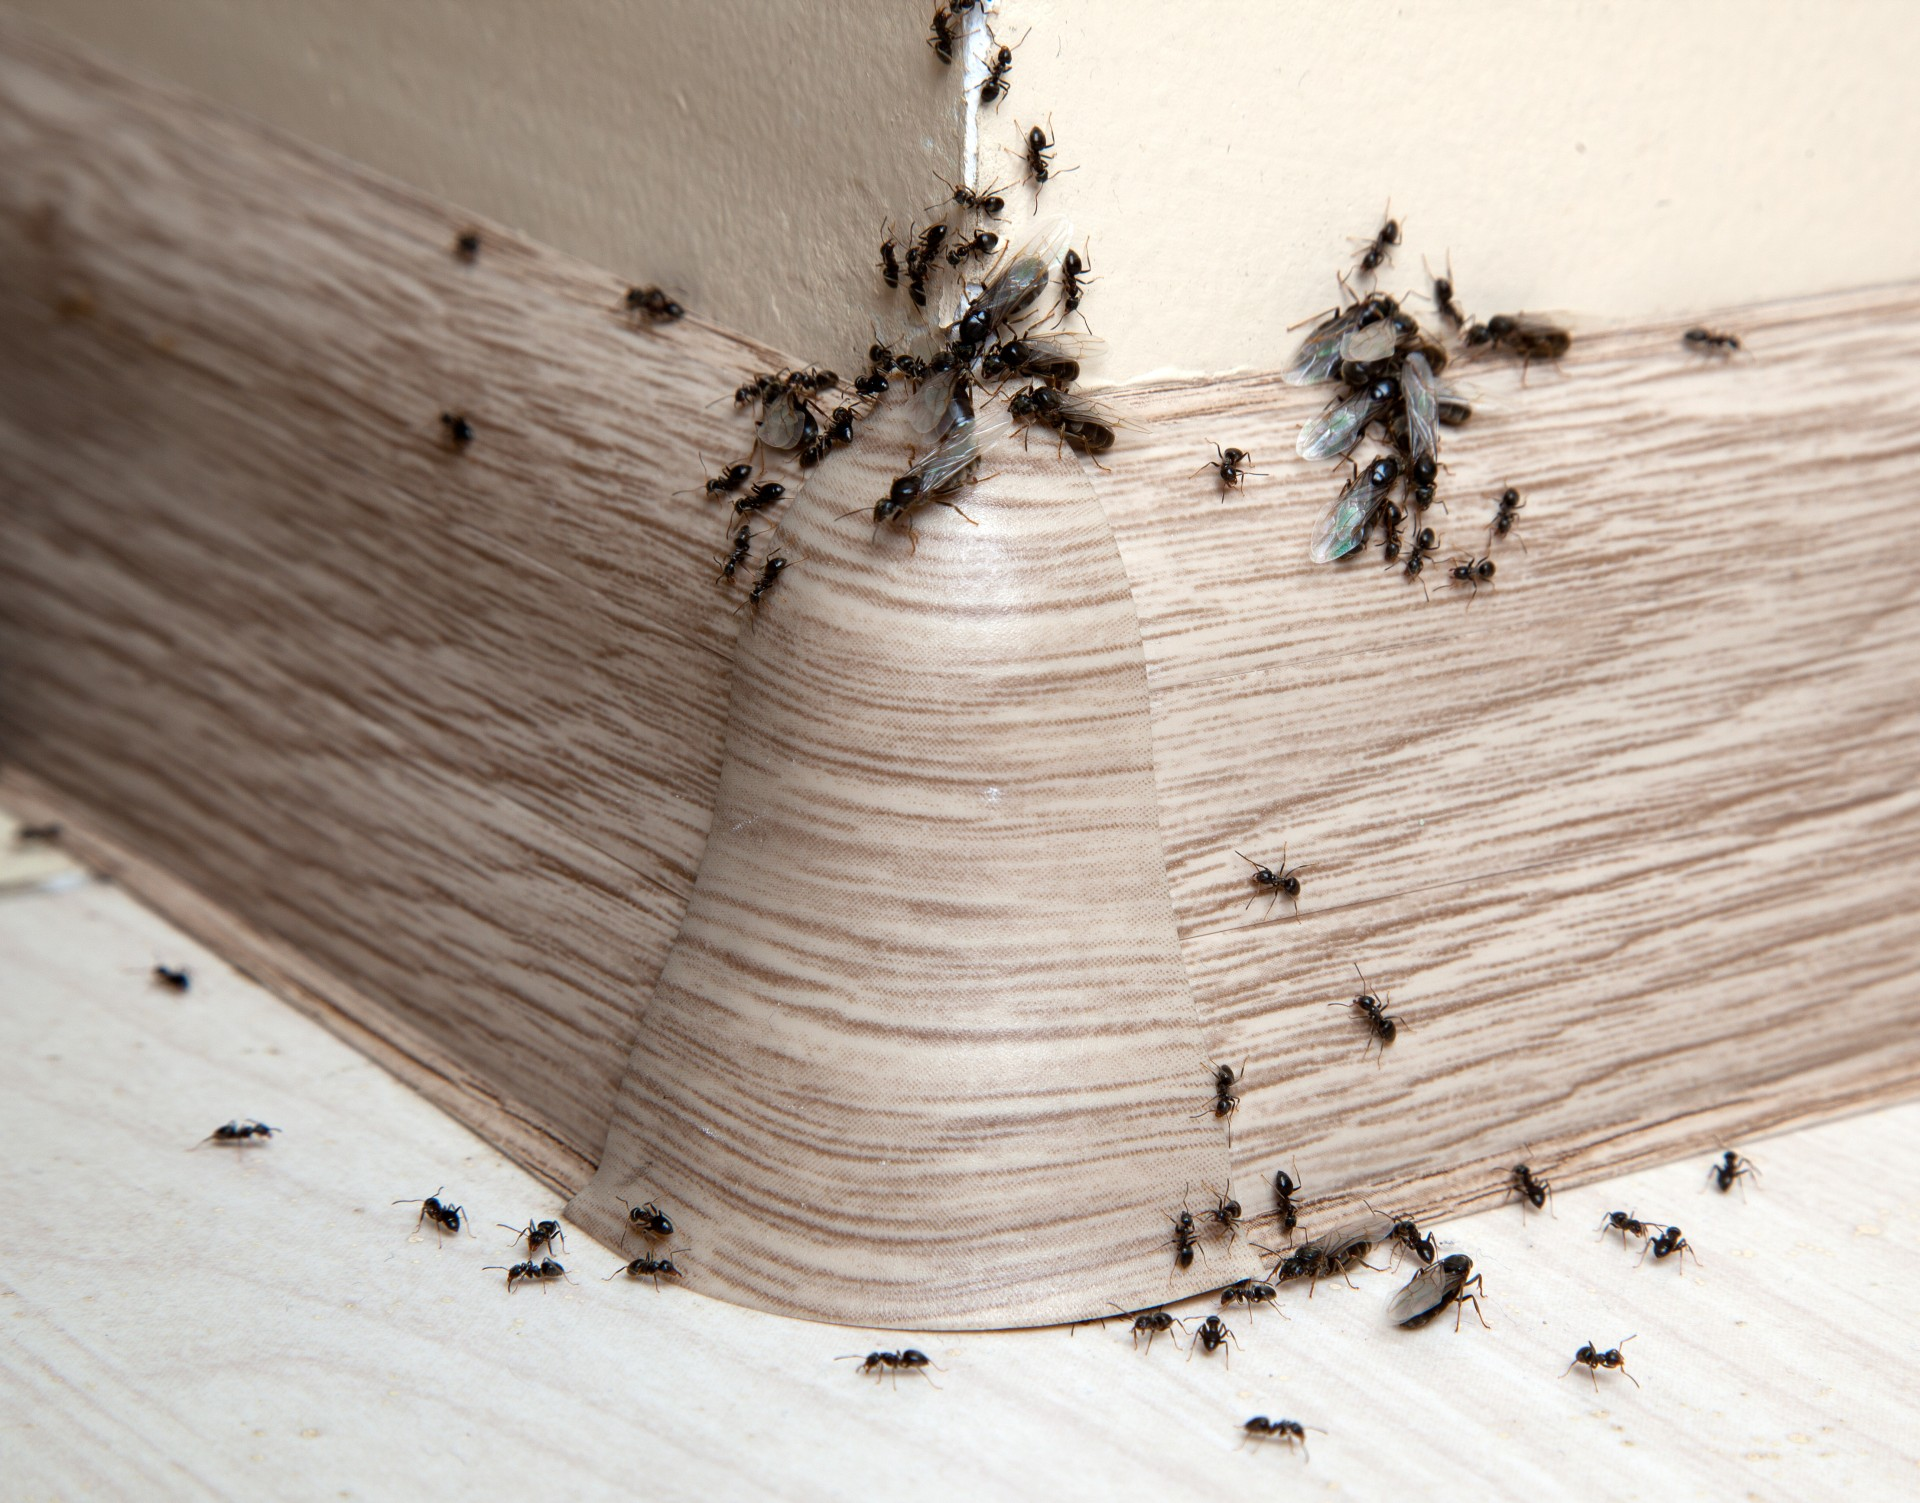 Ant Infestation, Pest Control in Uxbridge, Cowley, UB8. Call Now 020 8166 9746